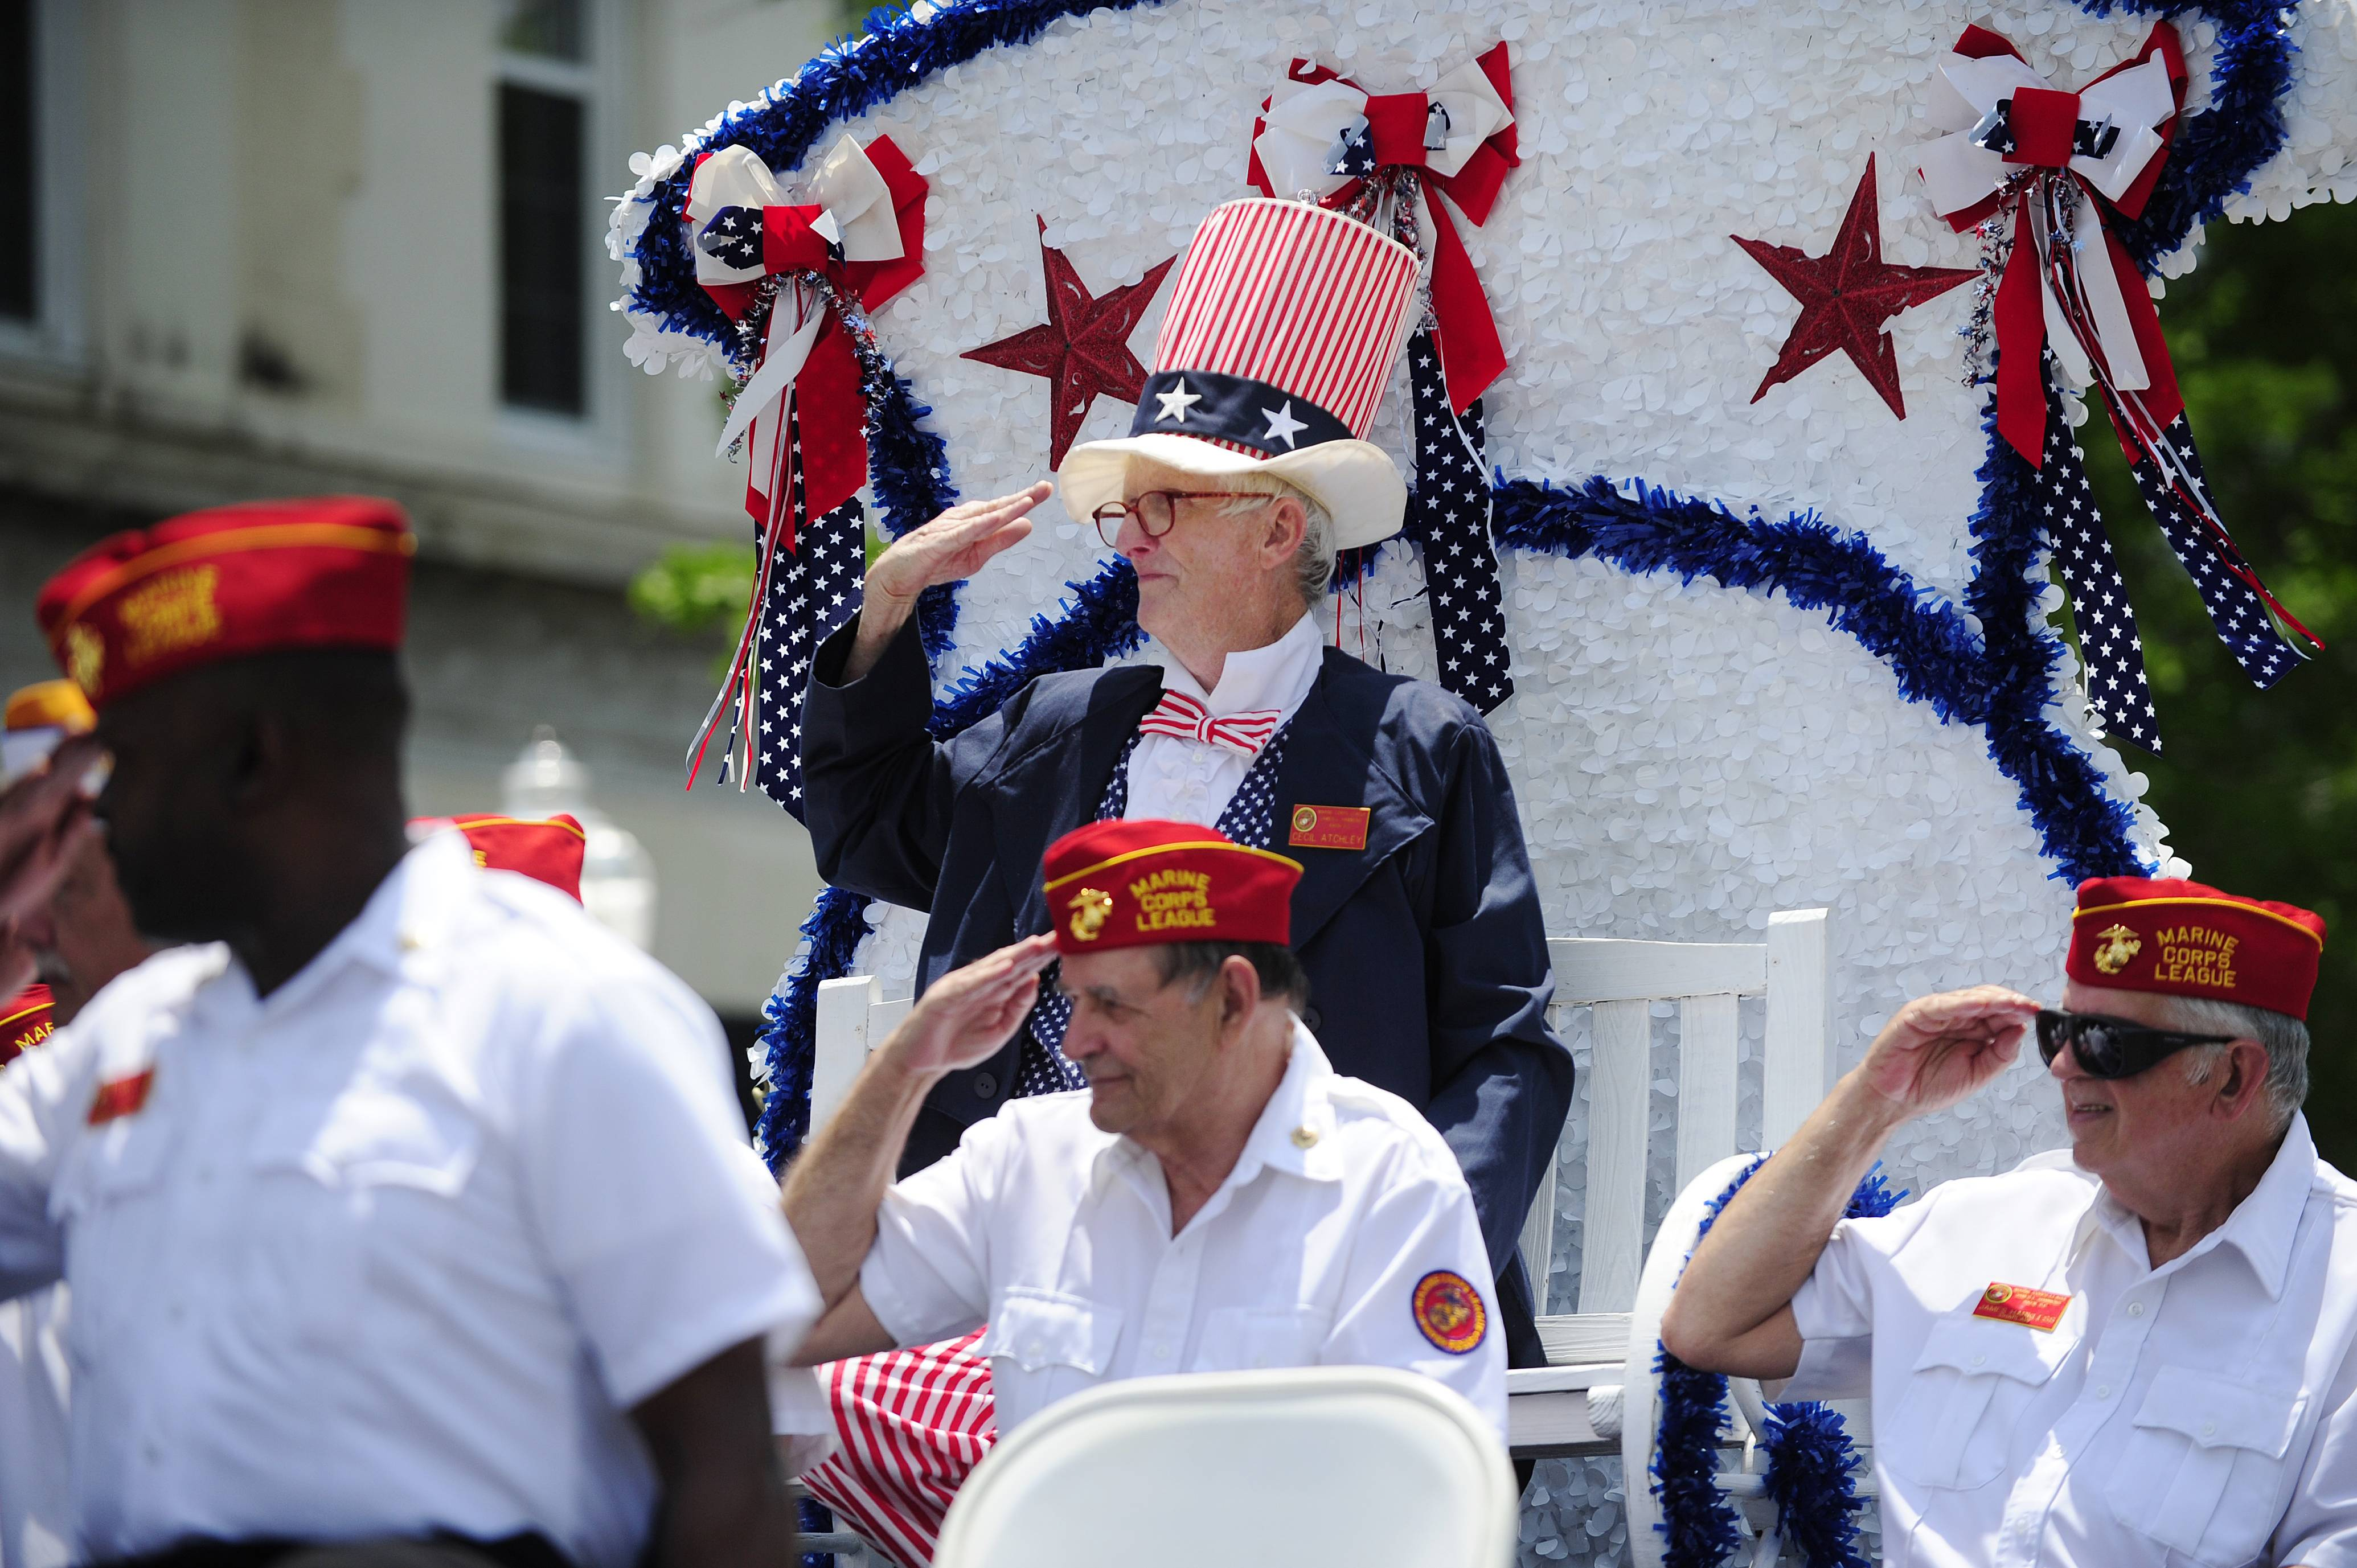 Cecil Atchley waves from the top of the Marine Corps League float during the Memorial Day Parade down Laurens Street on Saturday, May 24, 2014 in downtown Aiken, S.C.